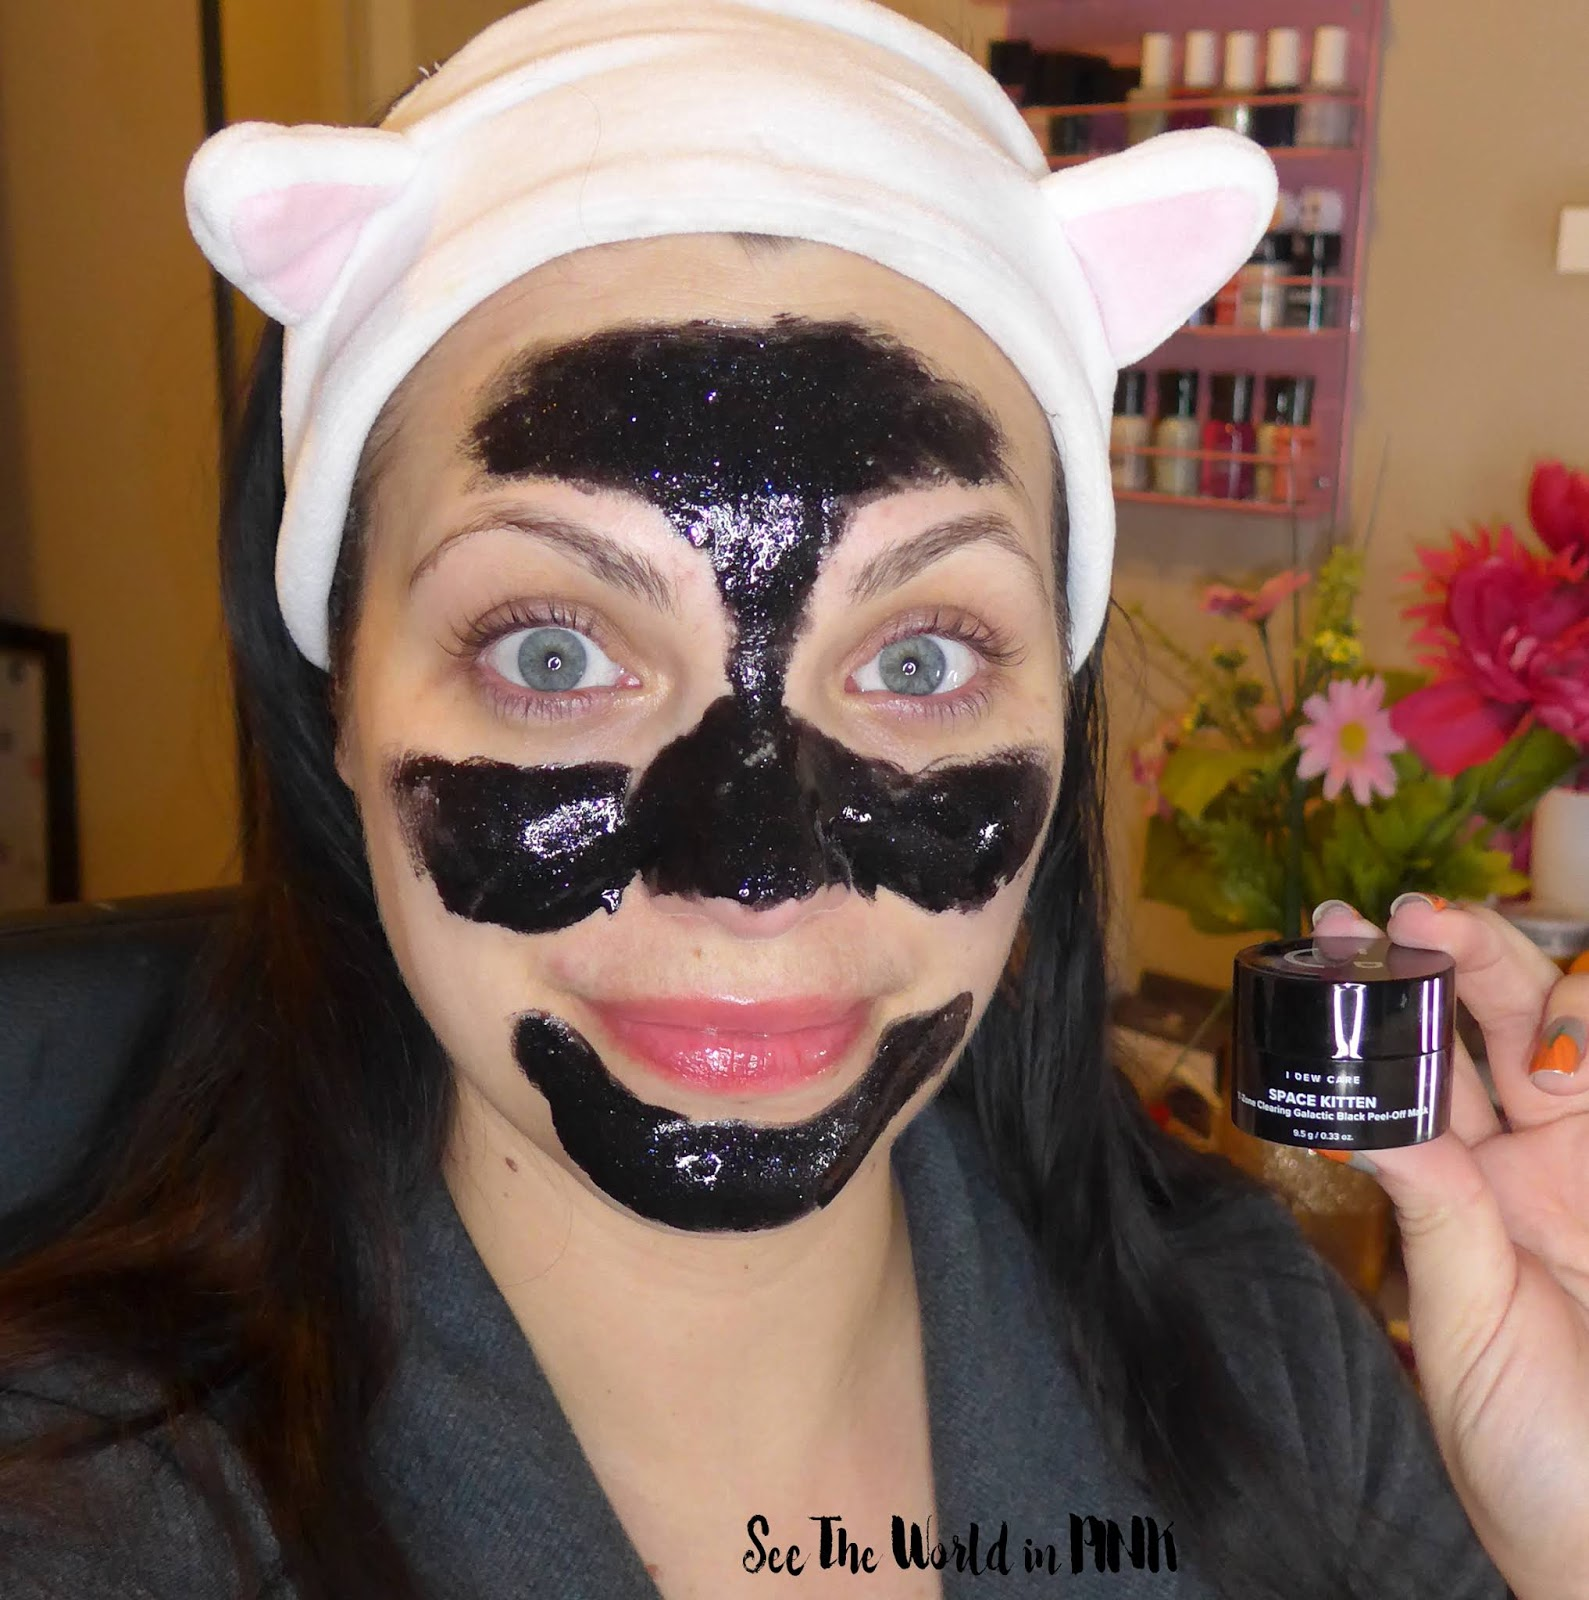 Memebox I Dew Care Mini Meow Trio Space Kitten Mask